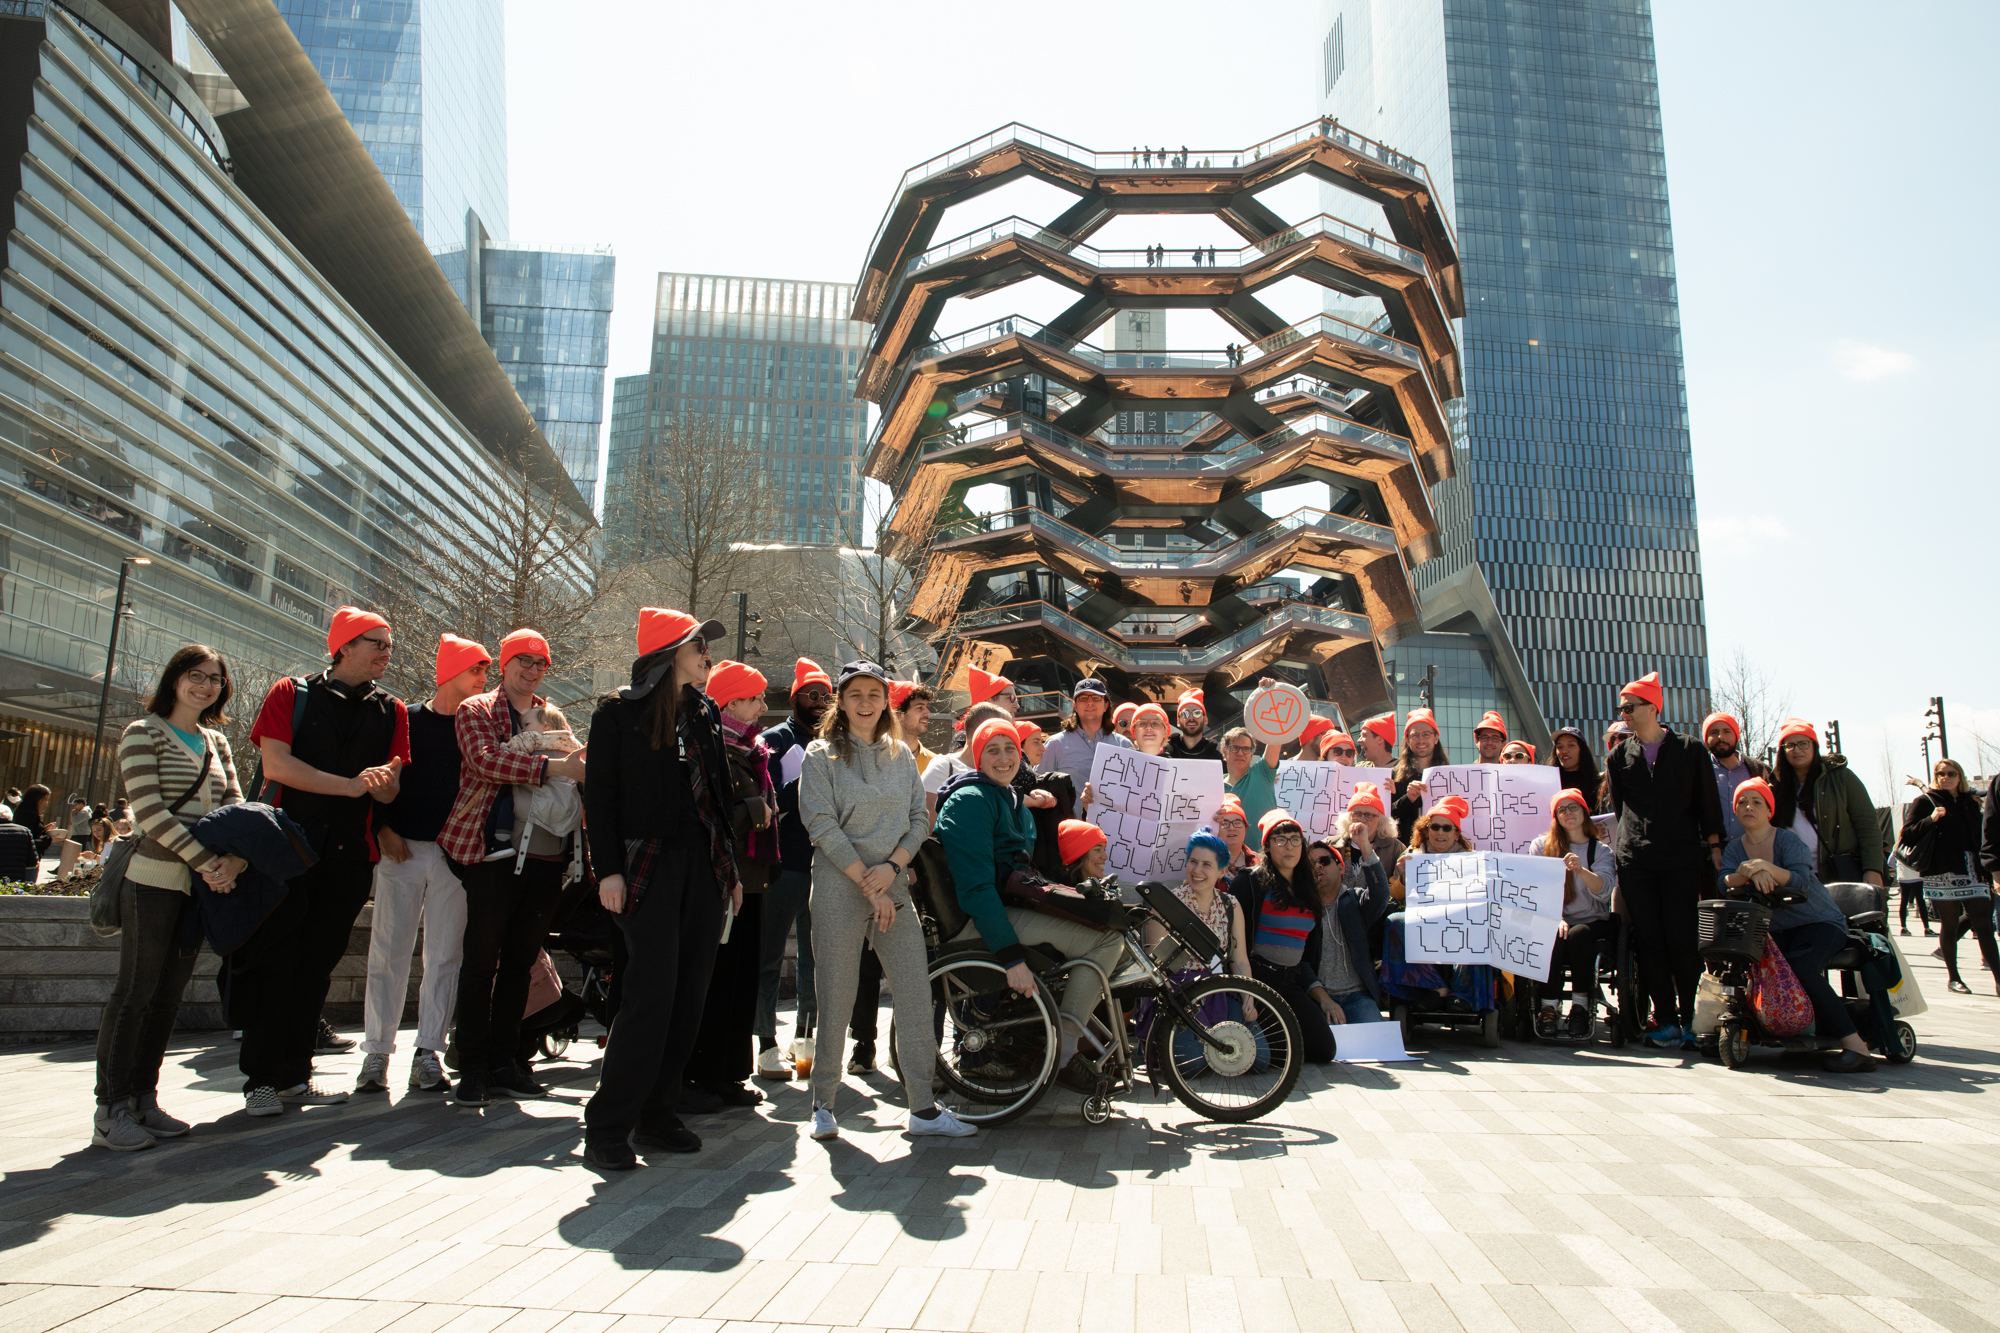 A group photo of people at Hudson Yards in Manhattan in front of the 'Vessel' — a building-sized, basket-like structure made of 154 interconnected stairways. People in the group are wearing bright orange Anti-Stairs Club Lounge beanies and holding Anti-Stairs Club Lounge signs.